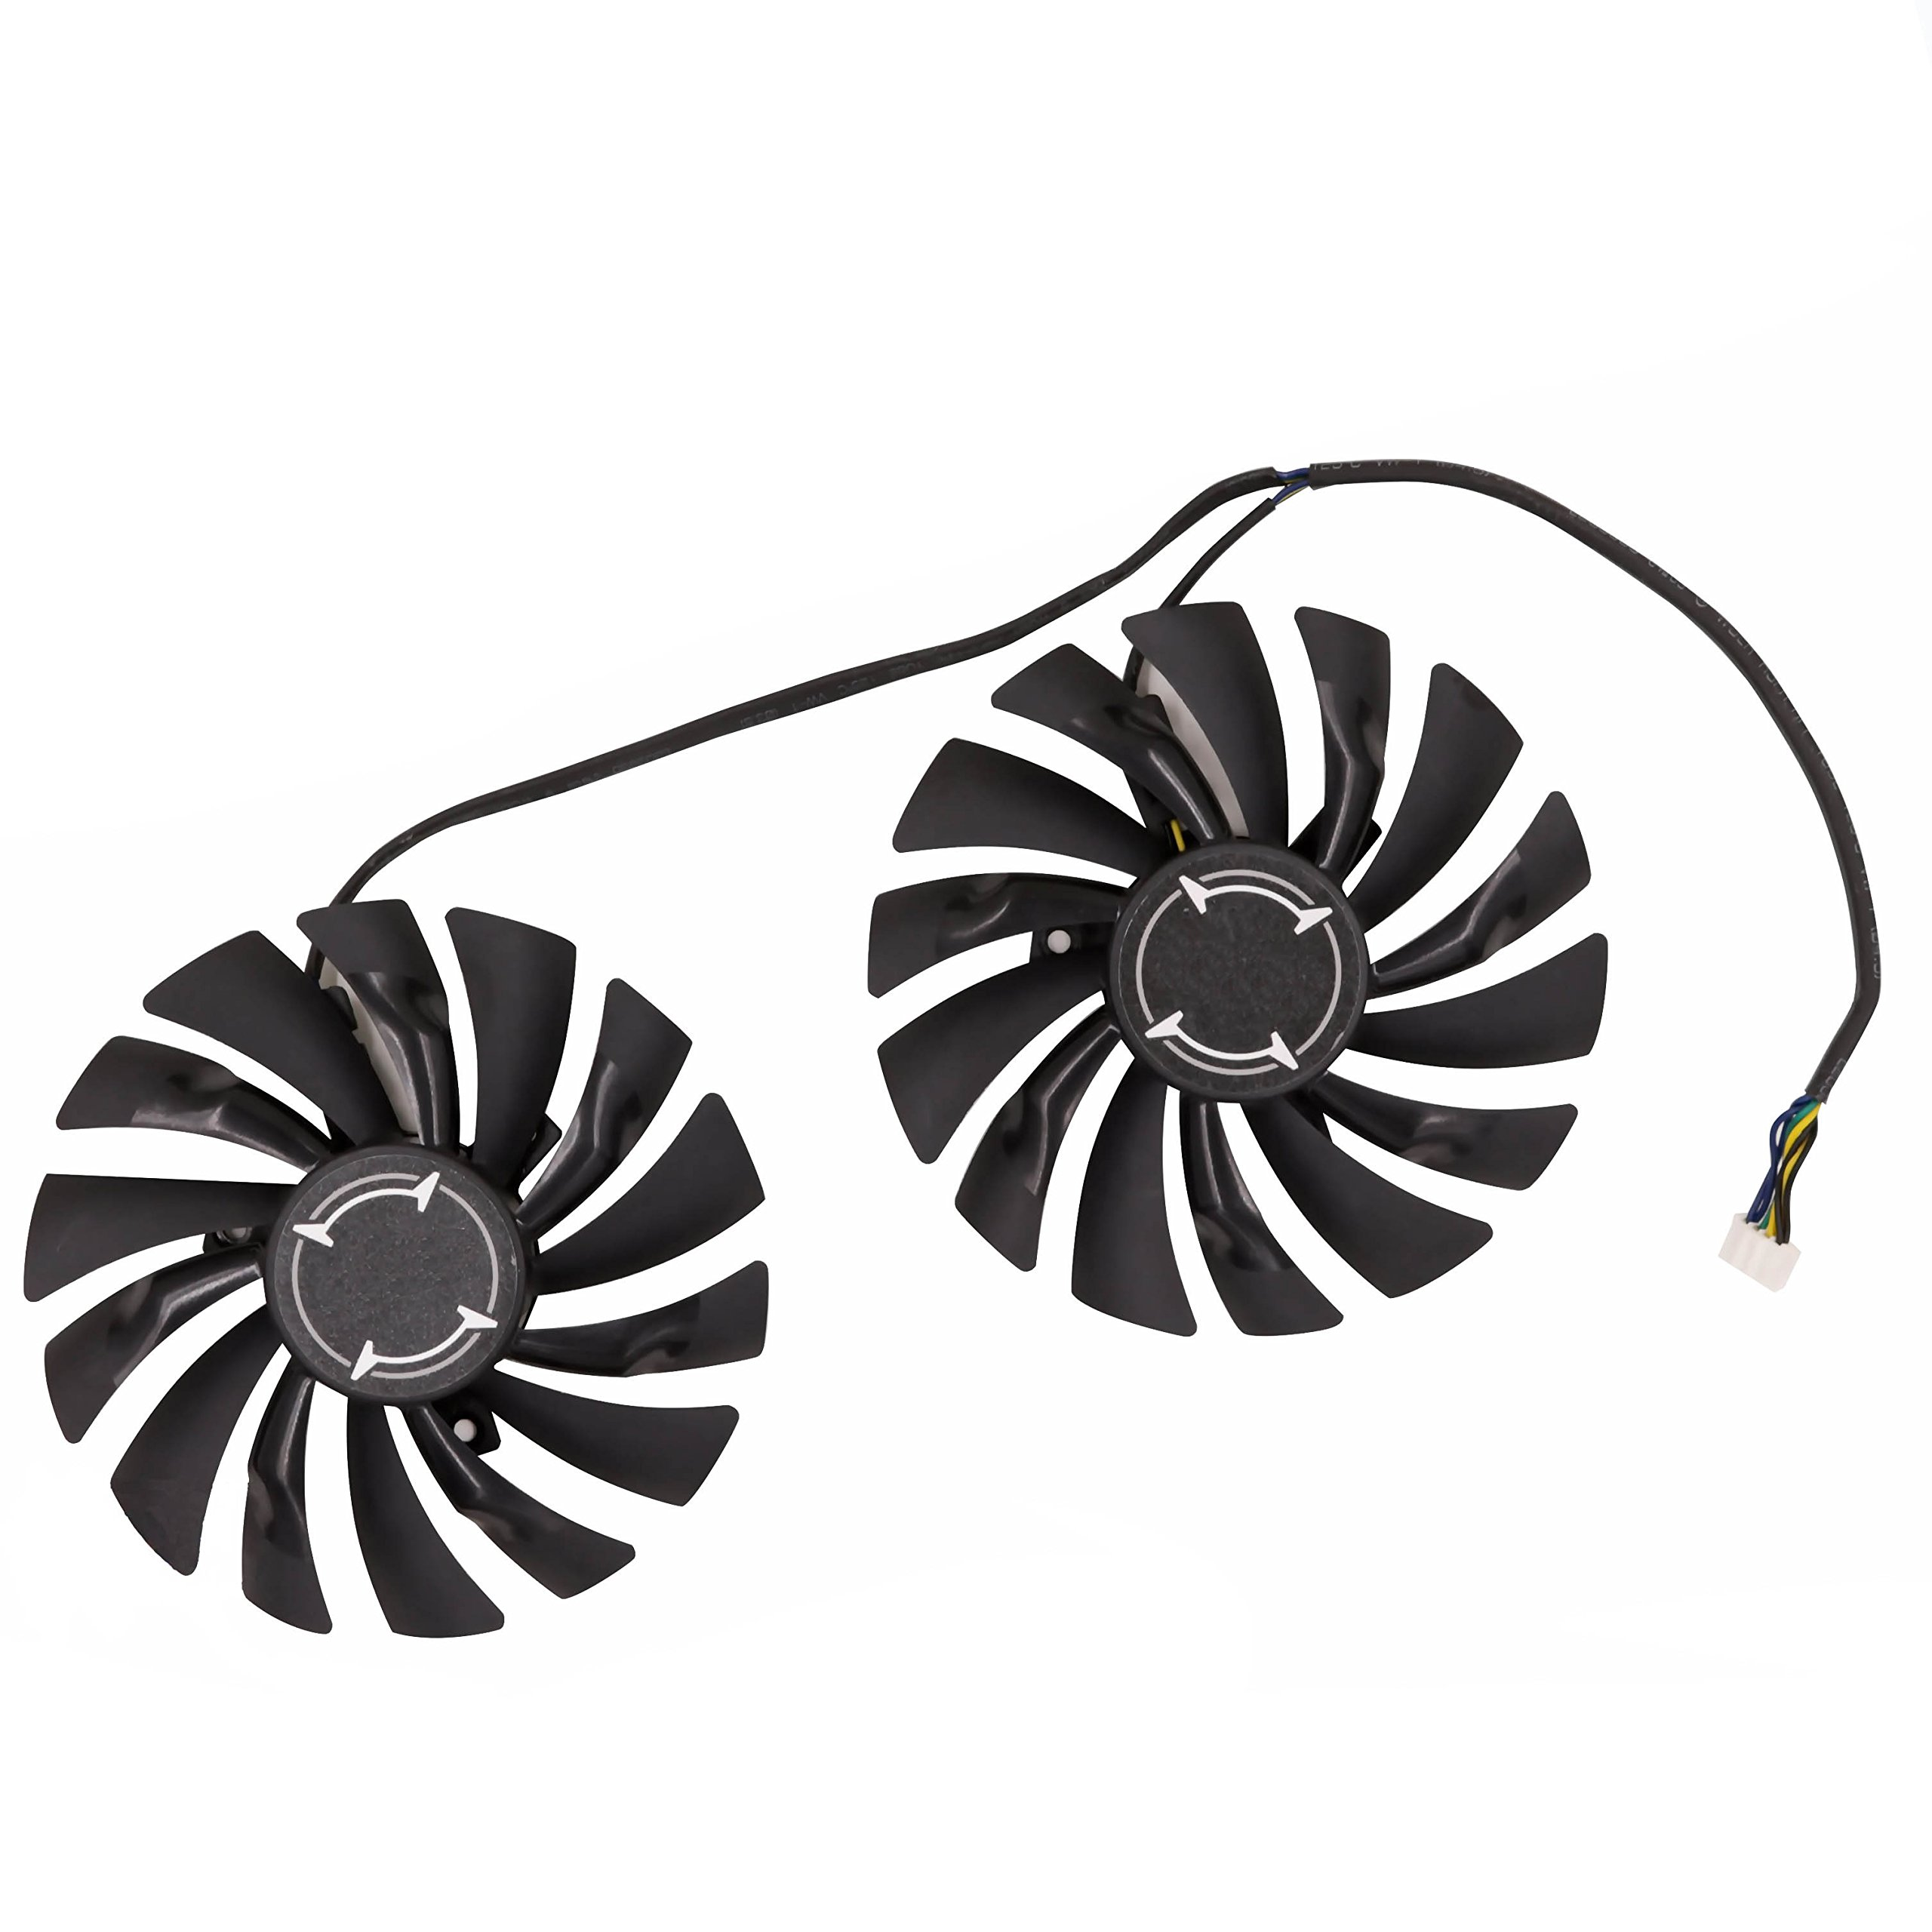 Replacement Graphics Card Cooling Fan for MSI GTX 1080 GTX 1070 GTX 1060 RX 580 RX570 Armor Video Card Cooler Fan DC 12V 0.4A 4Pin by Tebuyus